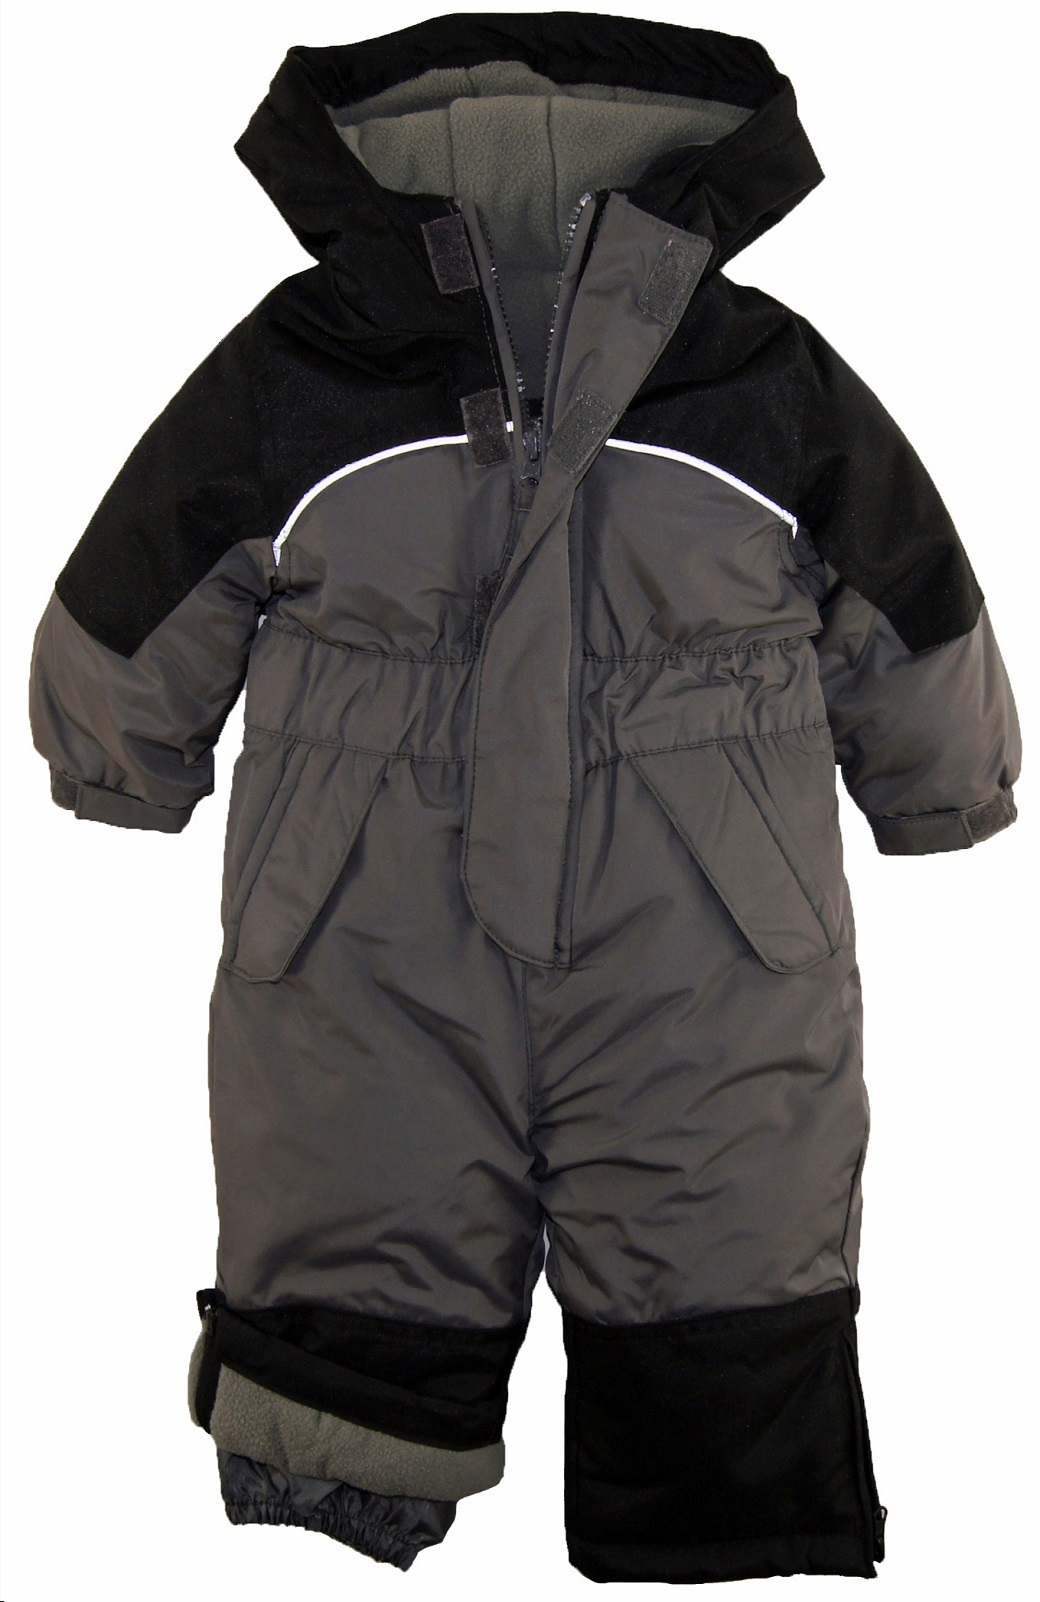 Shop for Snowsuits at REI - FREE SHIPPING With $50 minimum purchase. Top quality, great selection and expert advice you can trust. % Satisfaction Guarantee Toddler Boys' (4) add filter: Toddler Boys'. 4 results. Check your inbox for your first email (and a little surprise) from REI. We'll send you a few emails every week. You can.